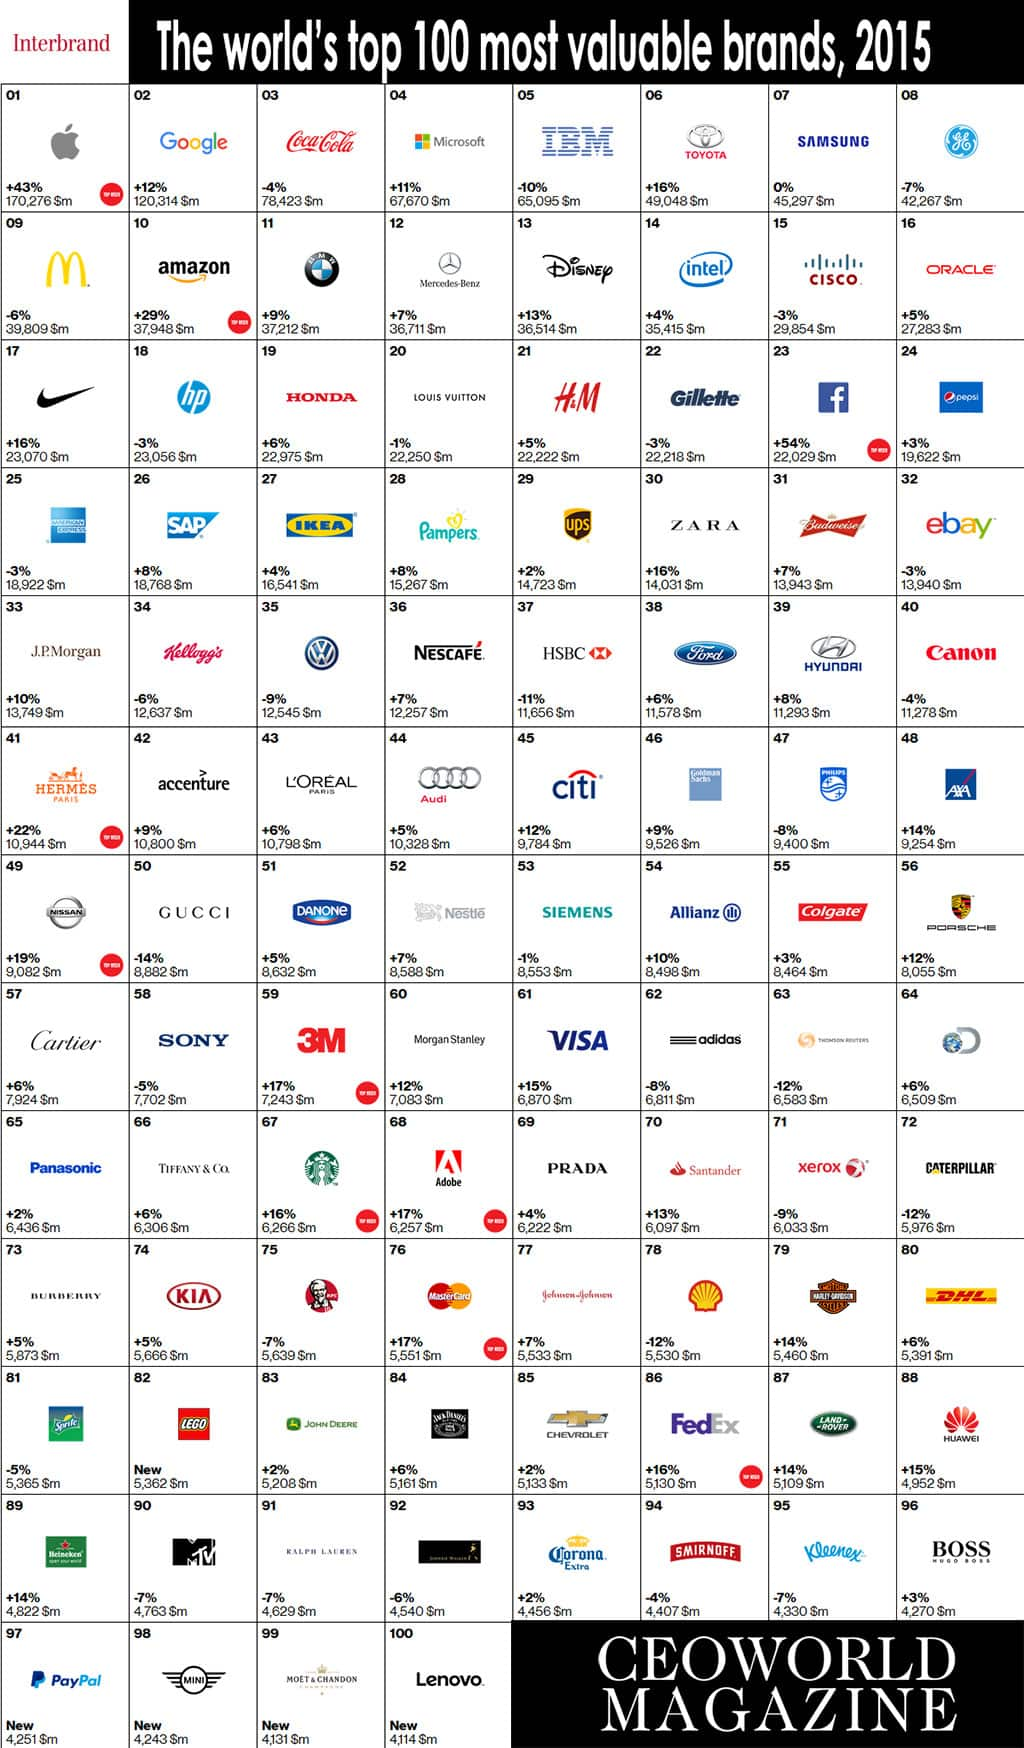 The World's Top 20 Most Valuable Brands For 2015